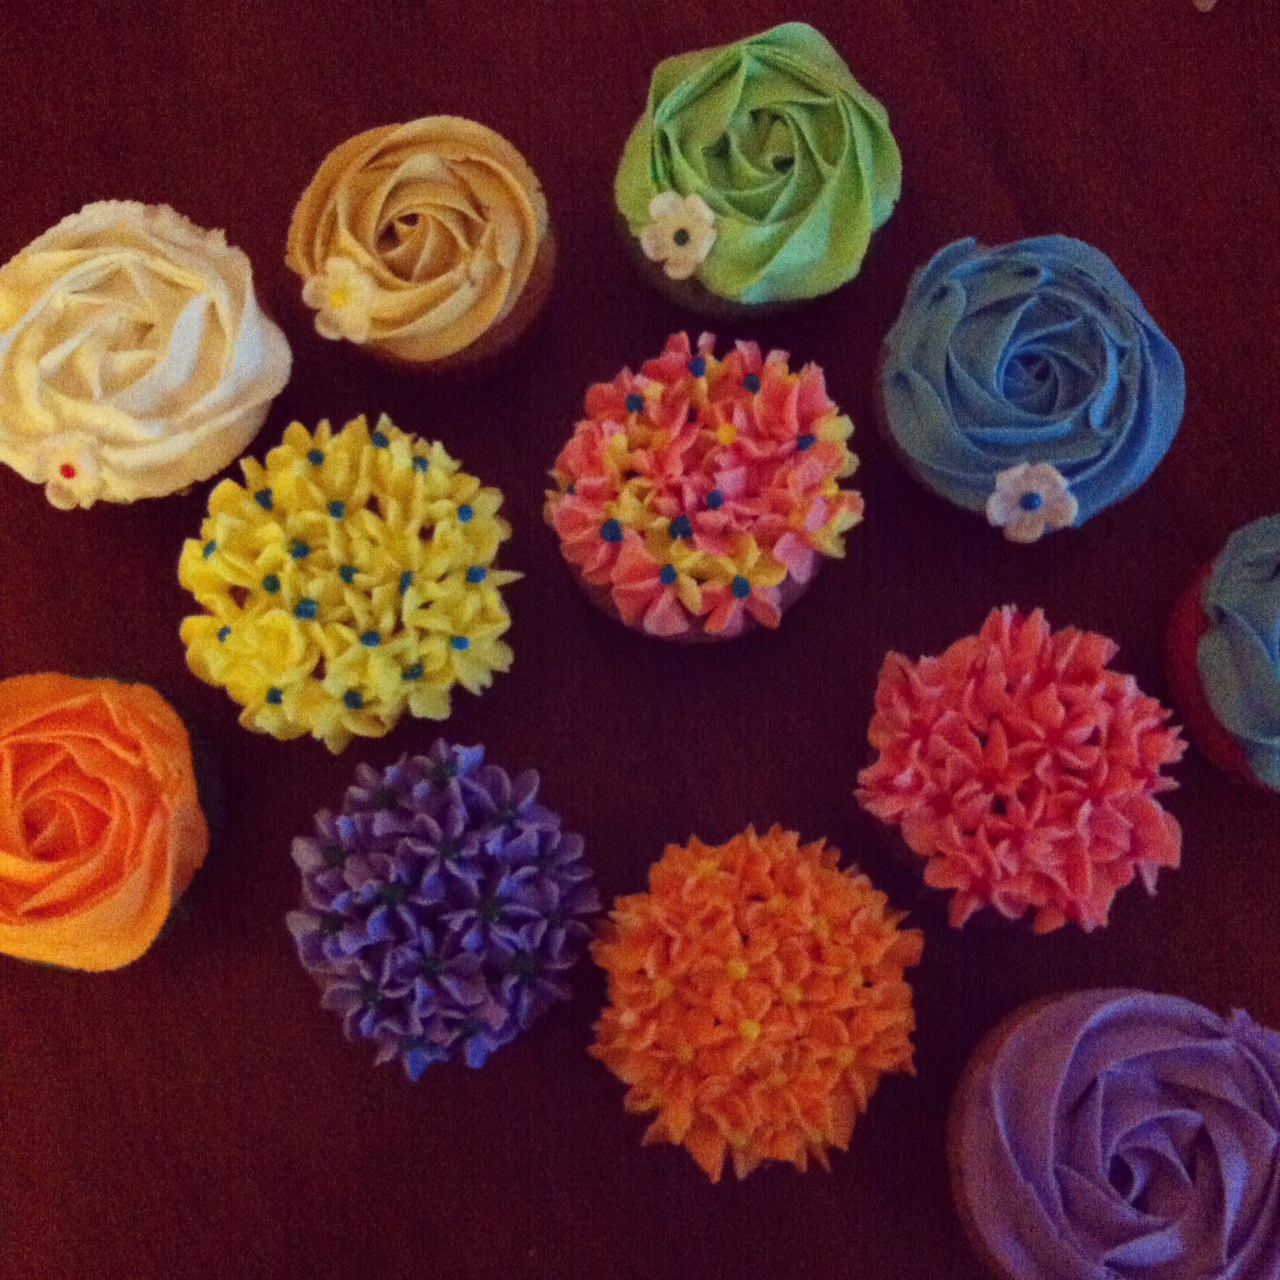 Baked Designs By Cindy Multi Colored Cupcakes